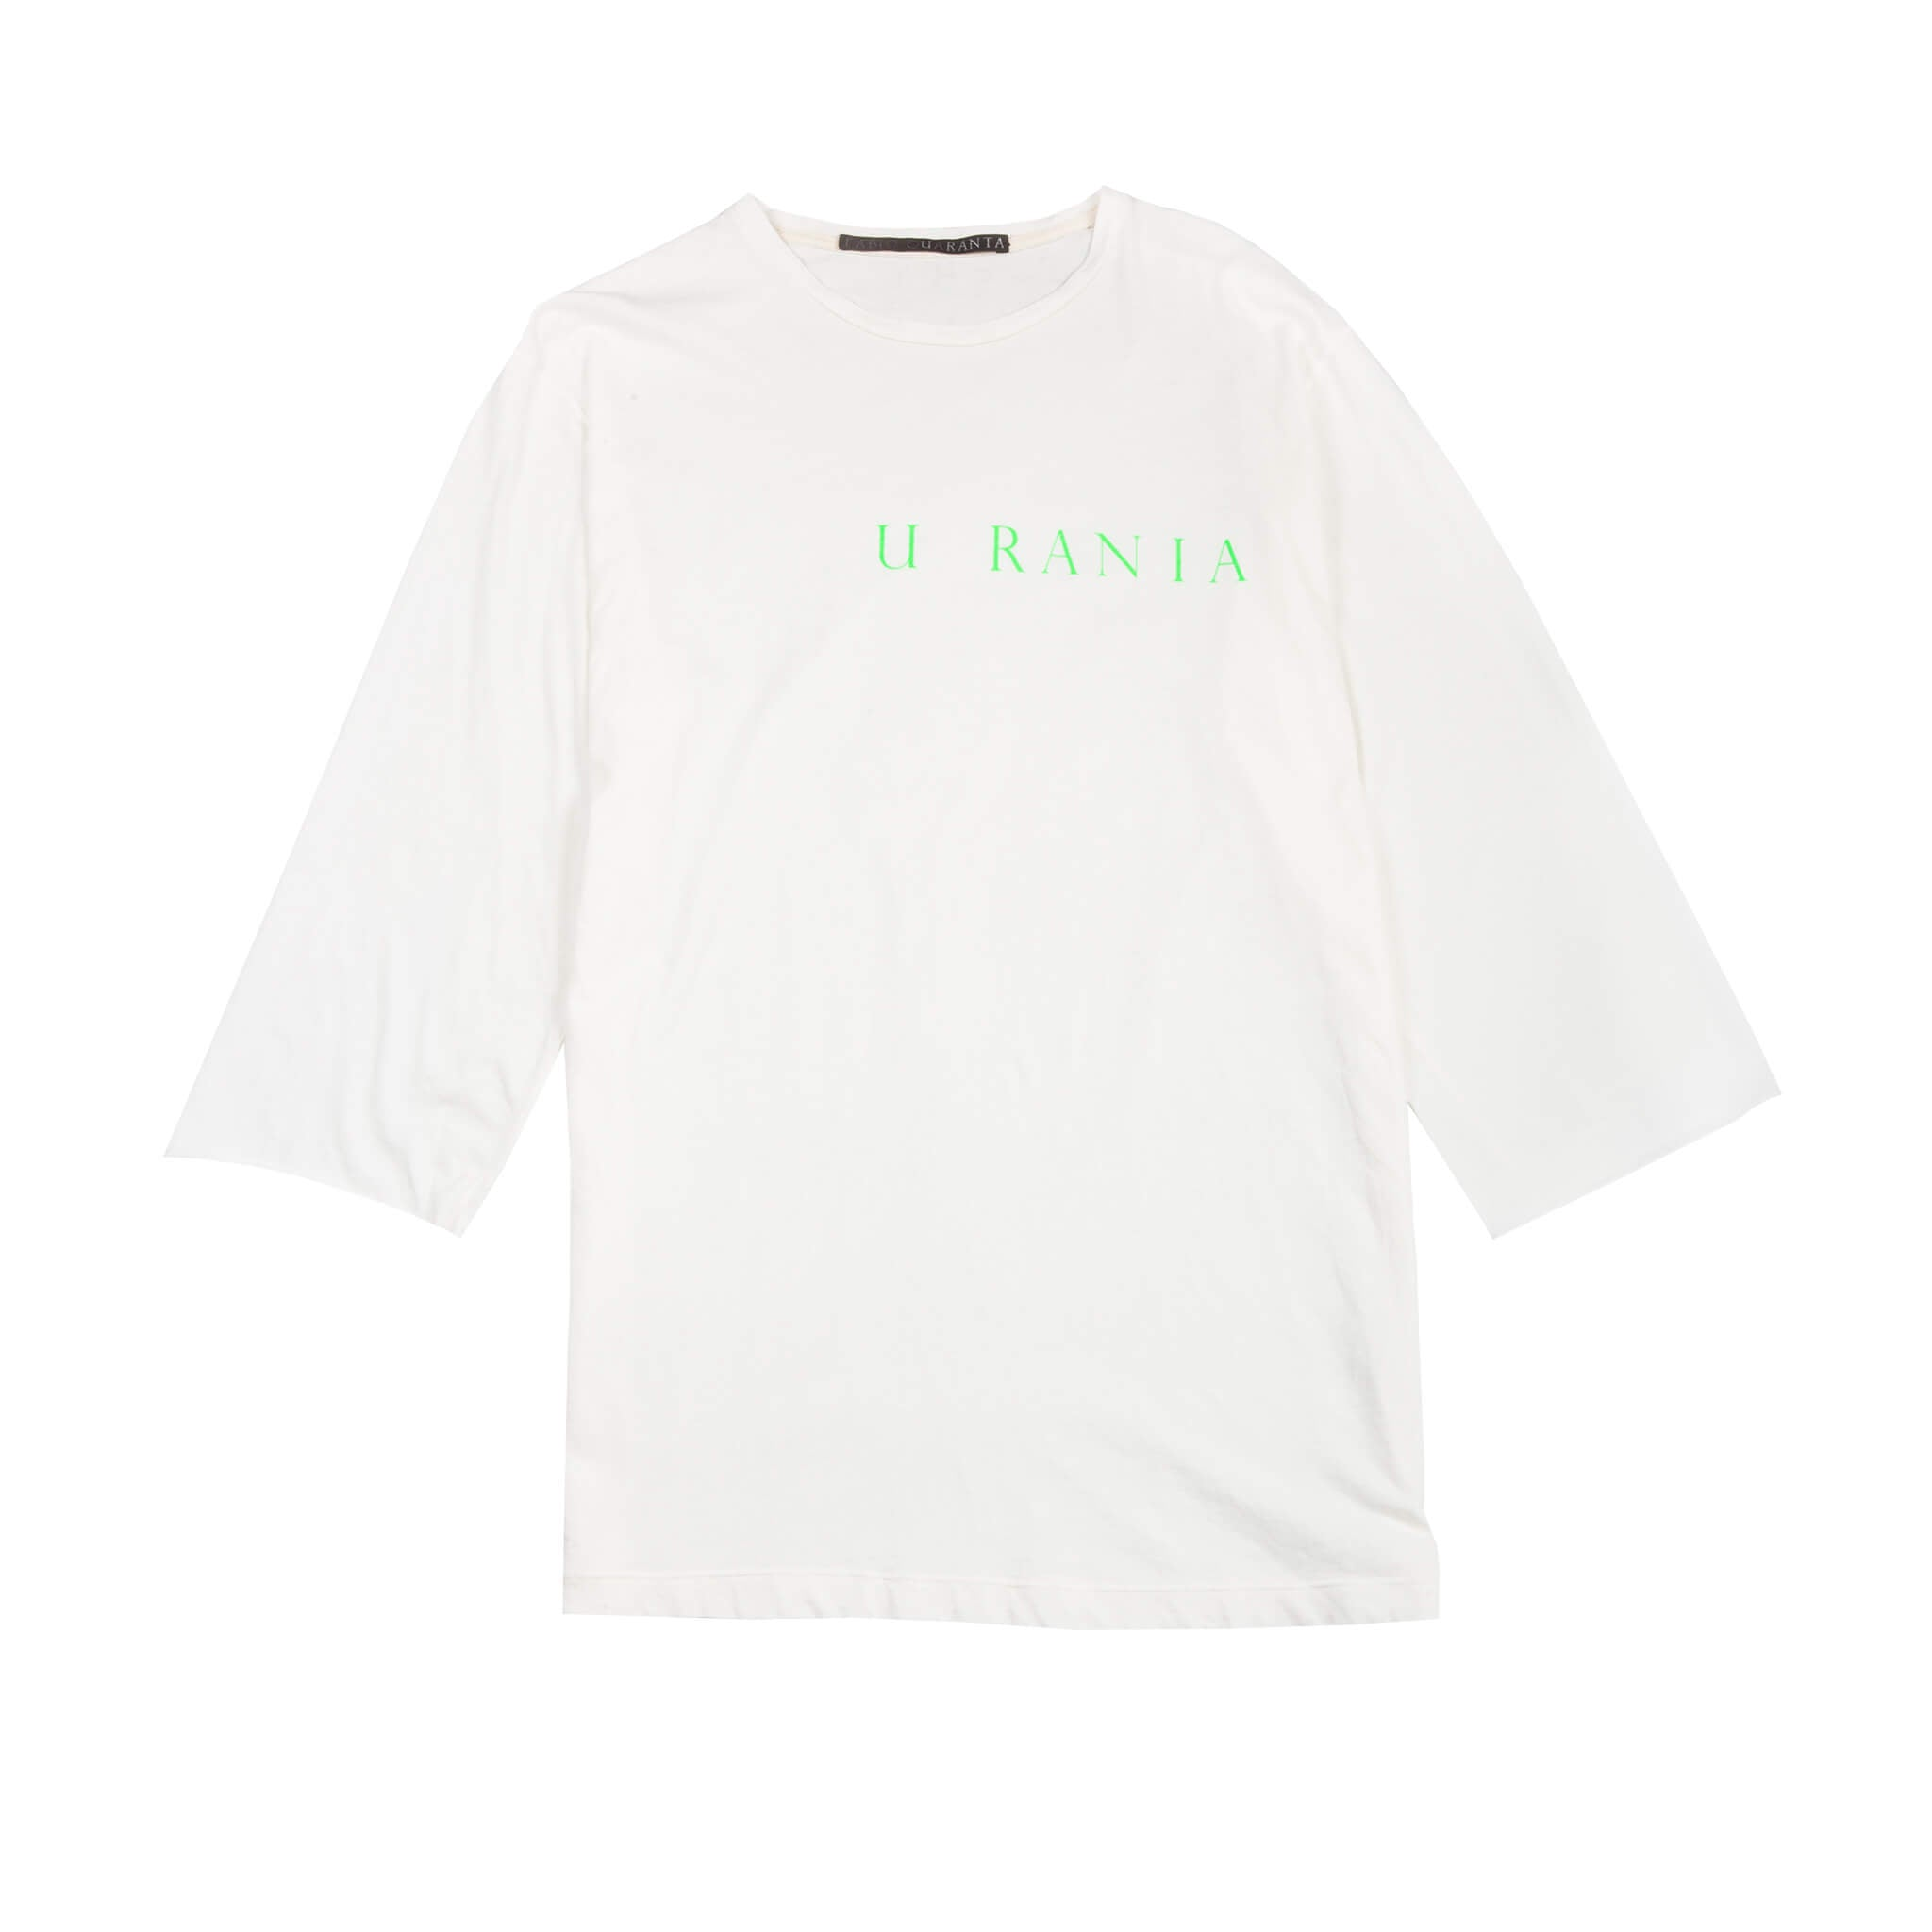 THE URANIA TEE WIEN EDITION